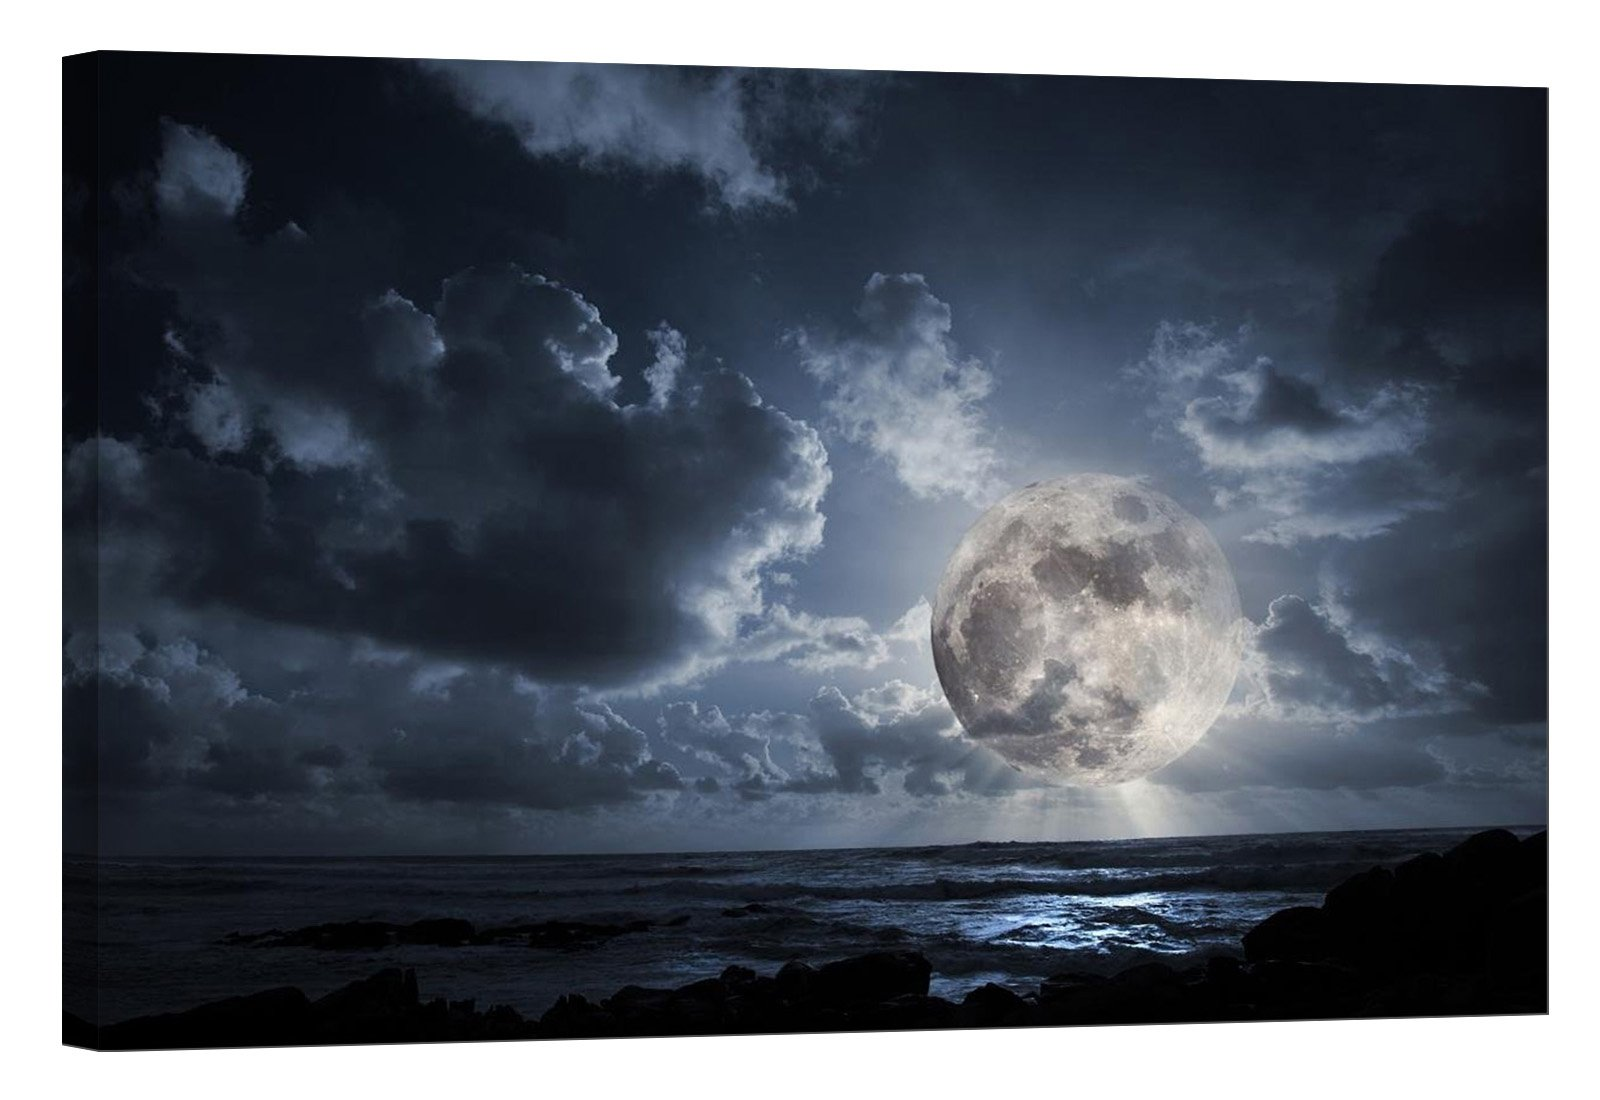 LightFairy Glow in The Dark Canvas Painting - Stretched and Framed Giclee Wall Art Print - Scenery Landscape Outdoor Fantastic Moon - Master Bedroom Living Room Décor - 36 x 24 inch